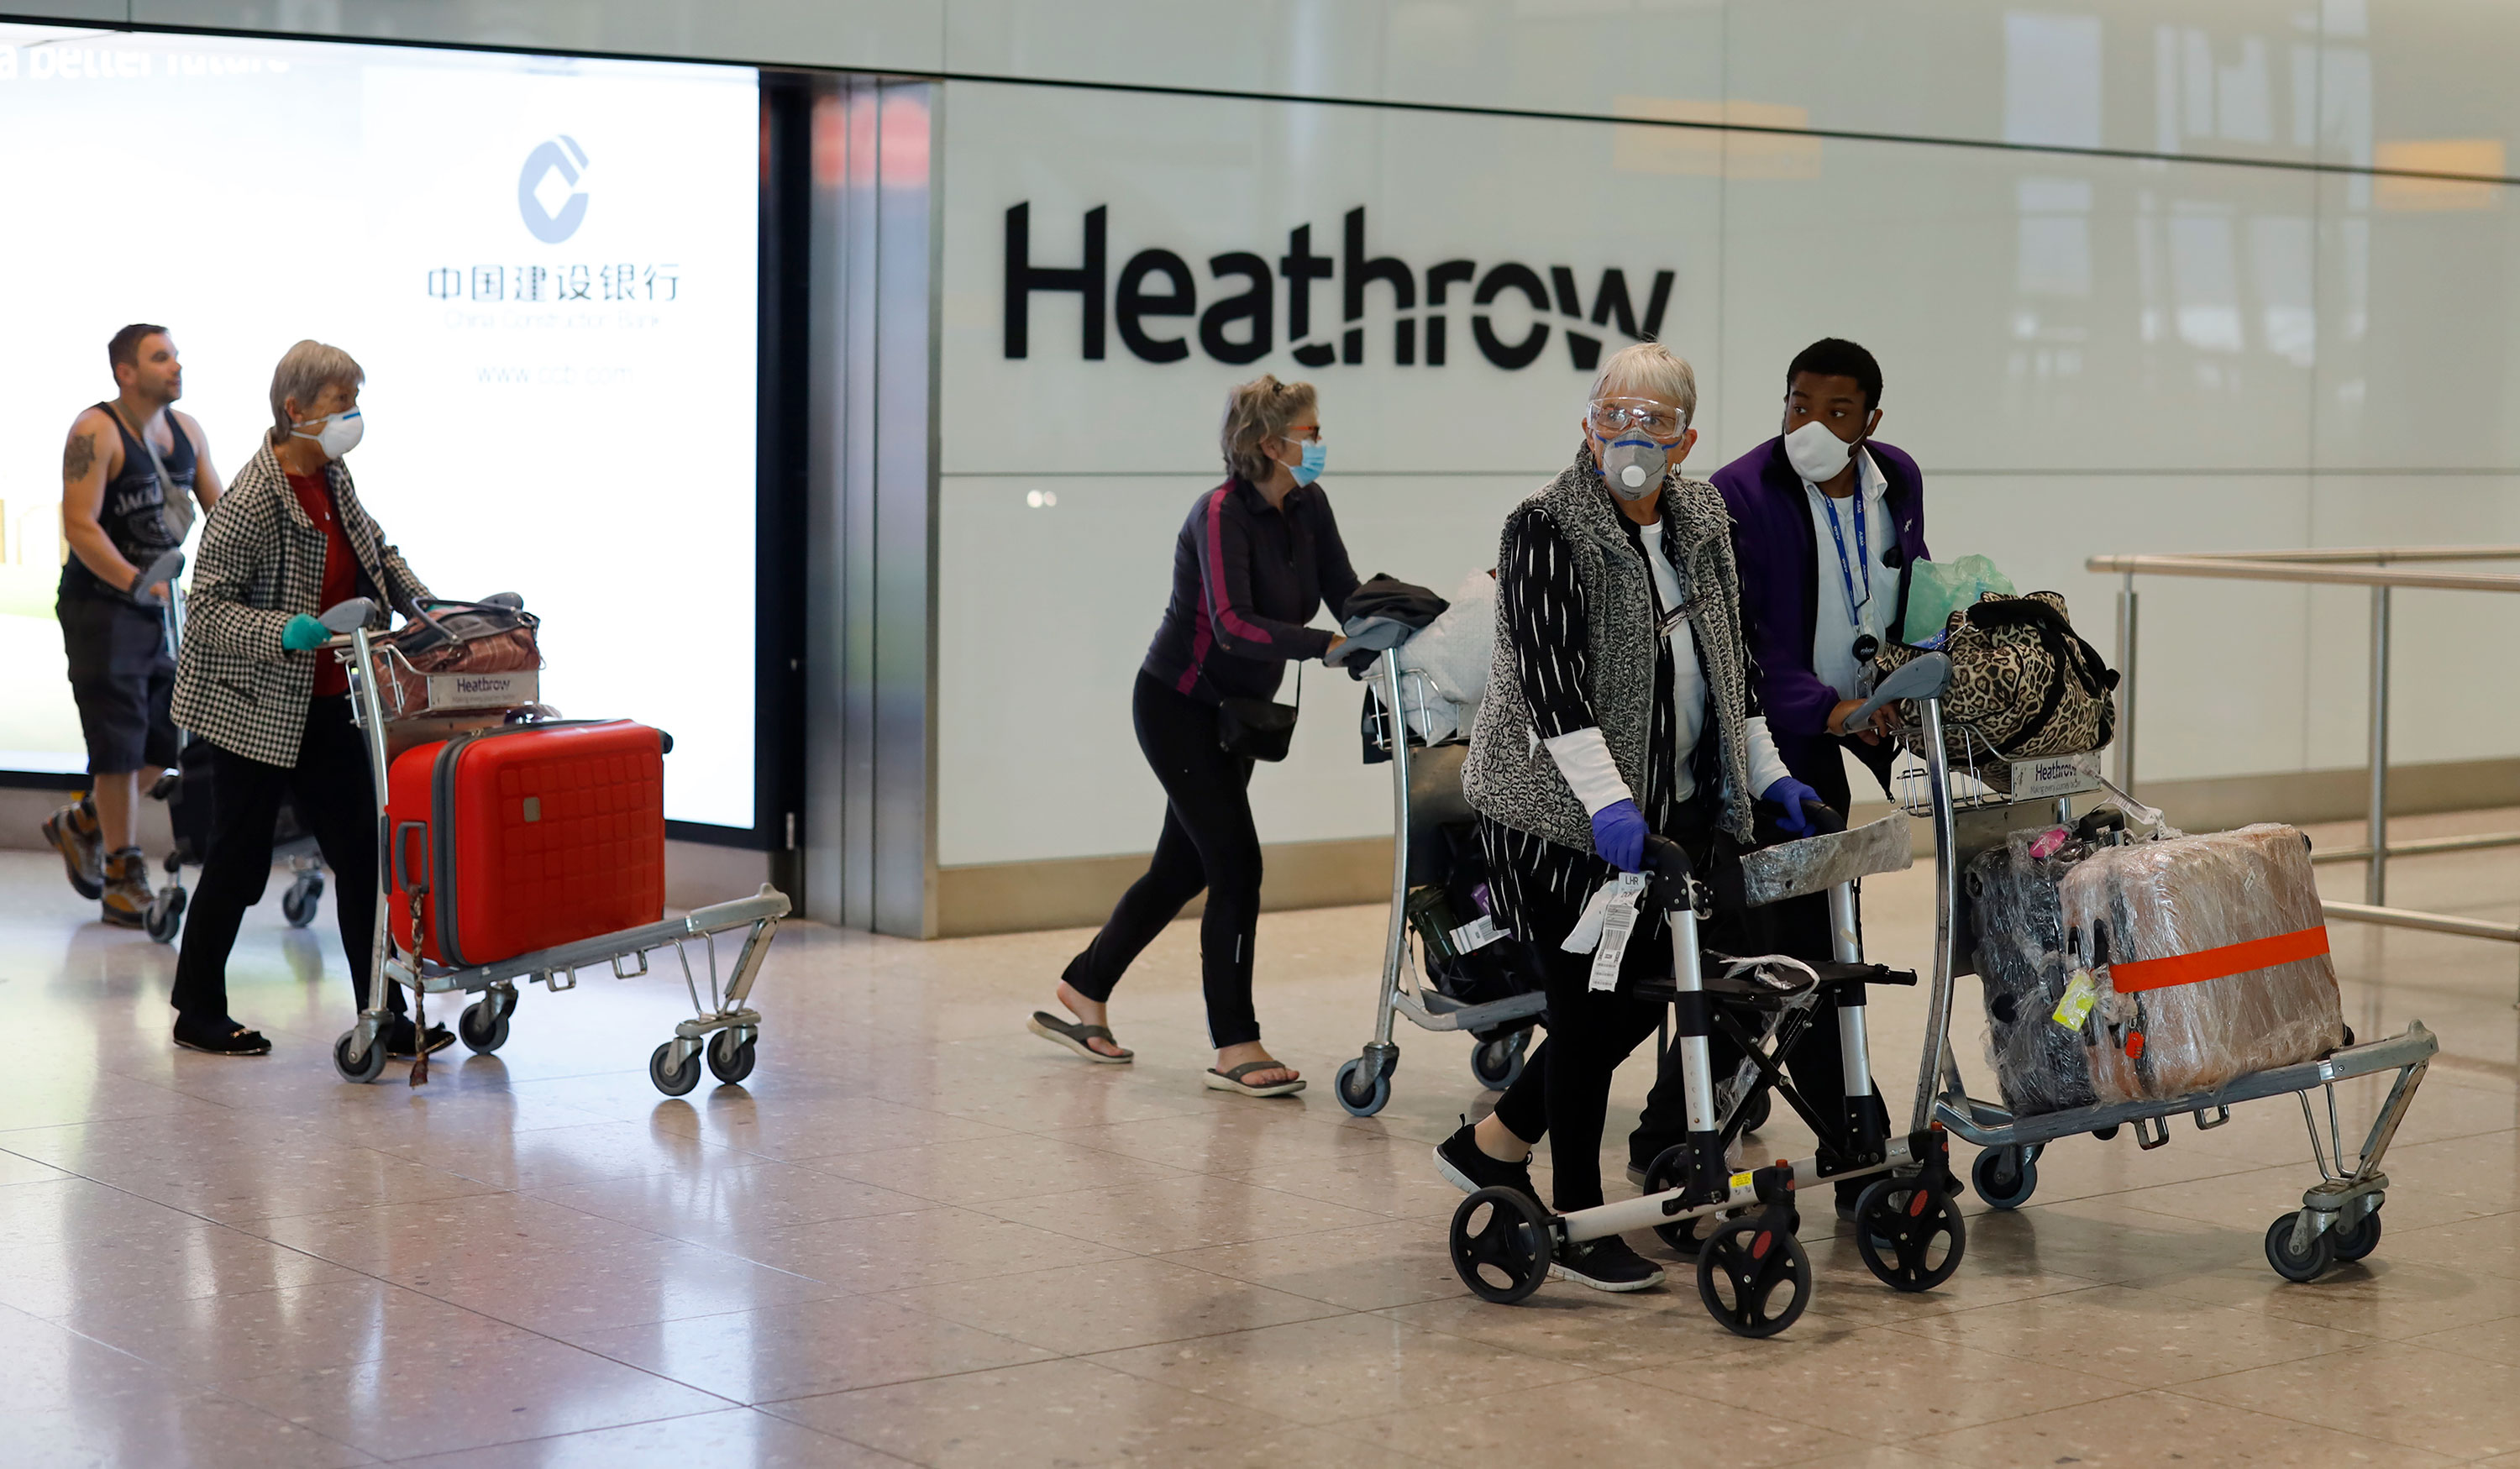 Passengers arrive at Terminal 2 of Heathrow Airport on May 22 in London, England.